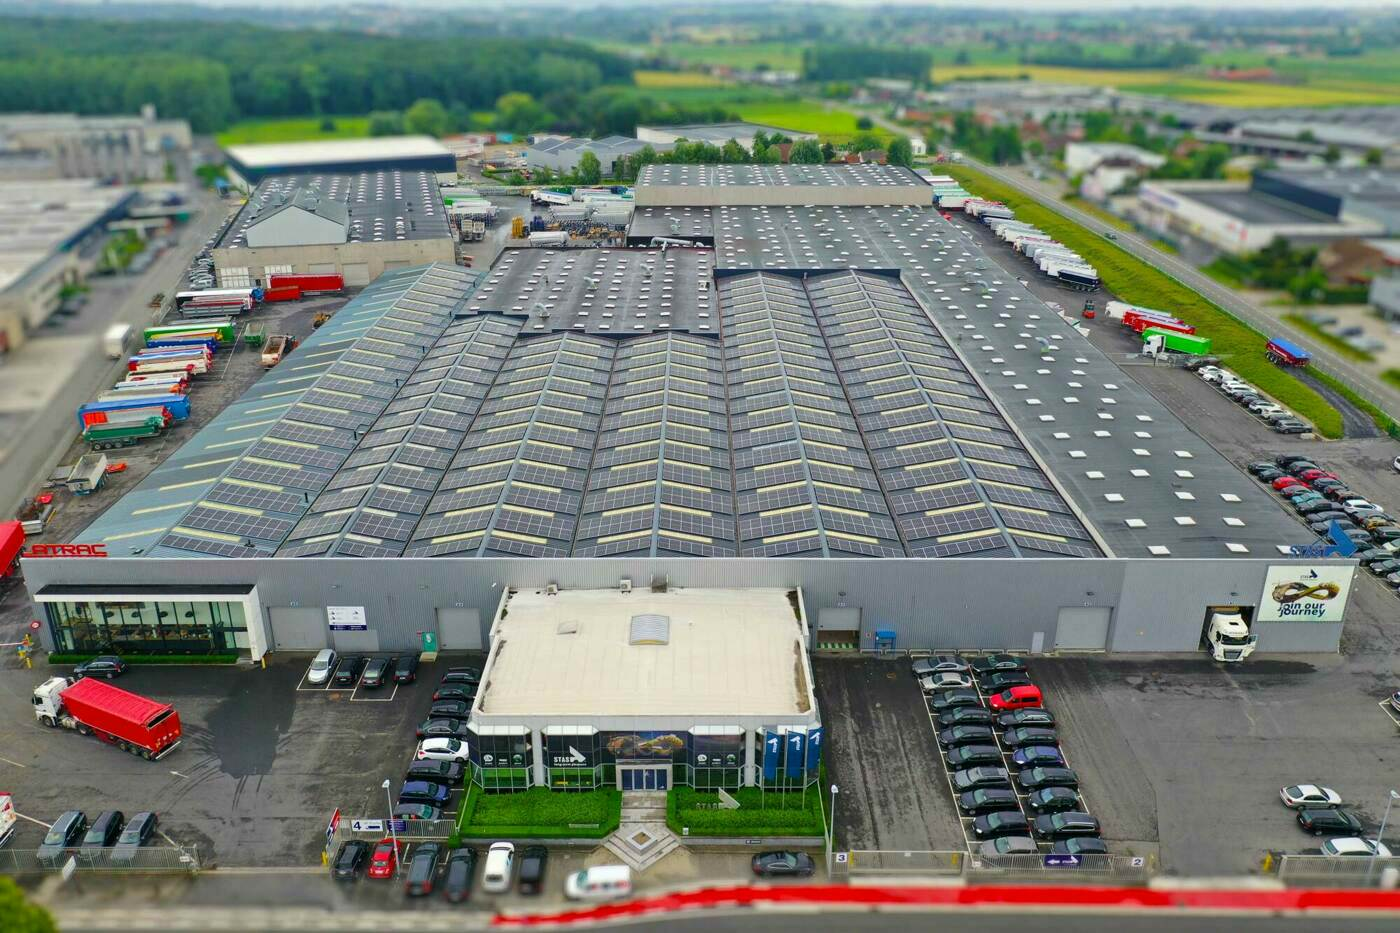 STAS invests in solar panels: third of energy consumption is green power